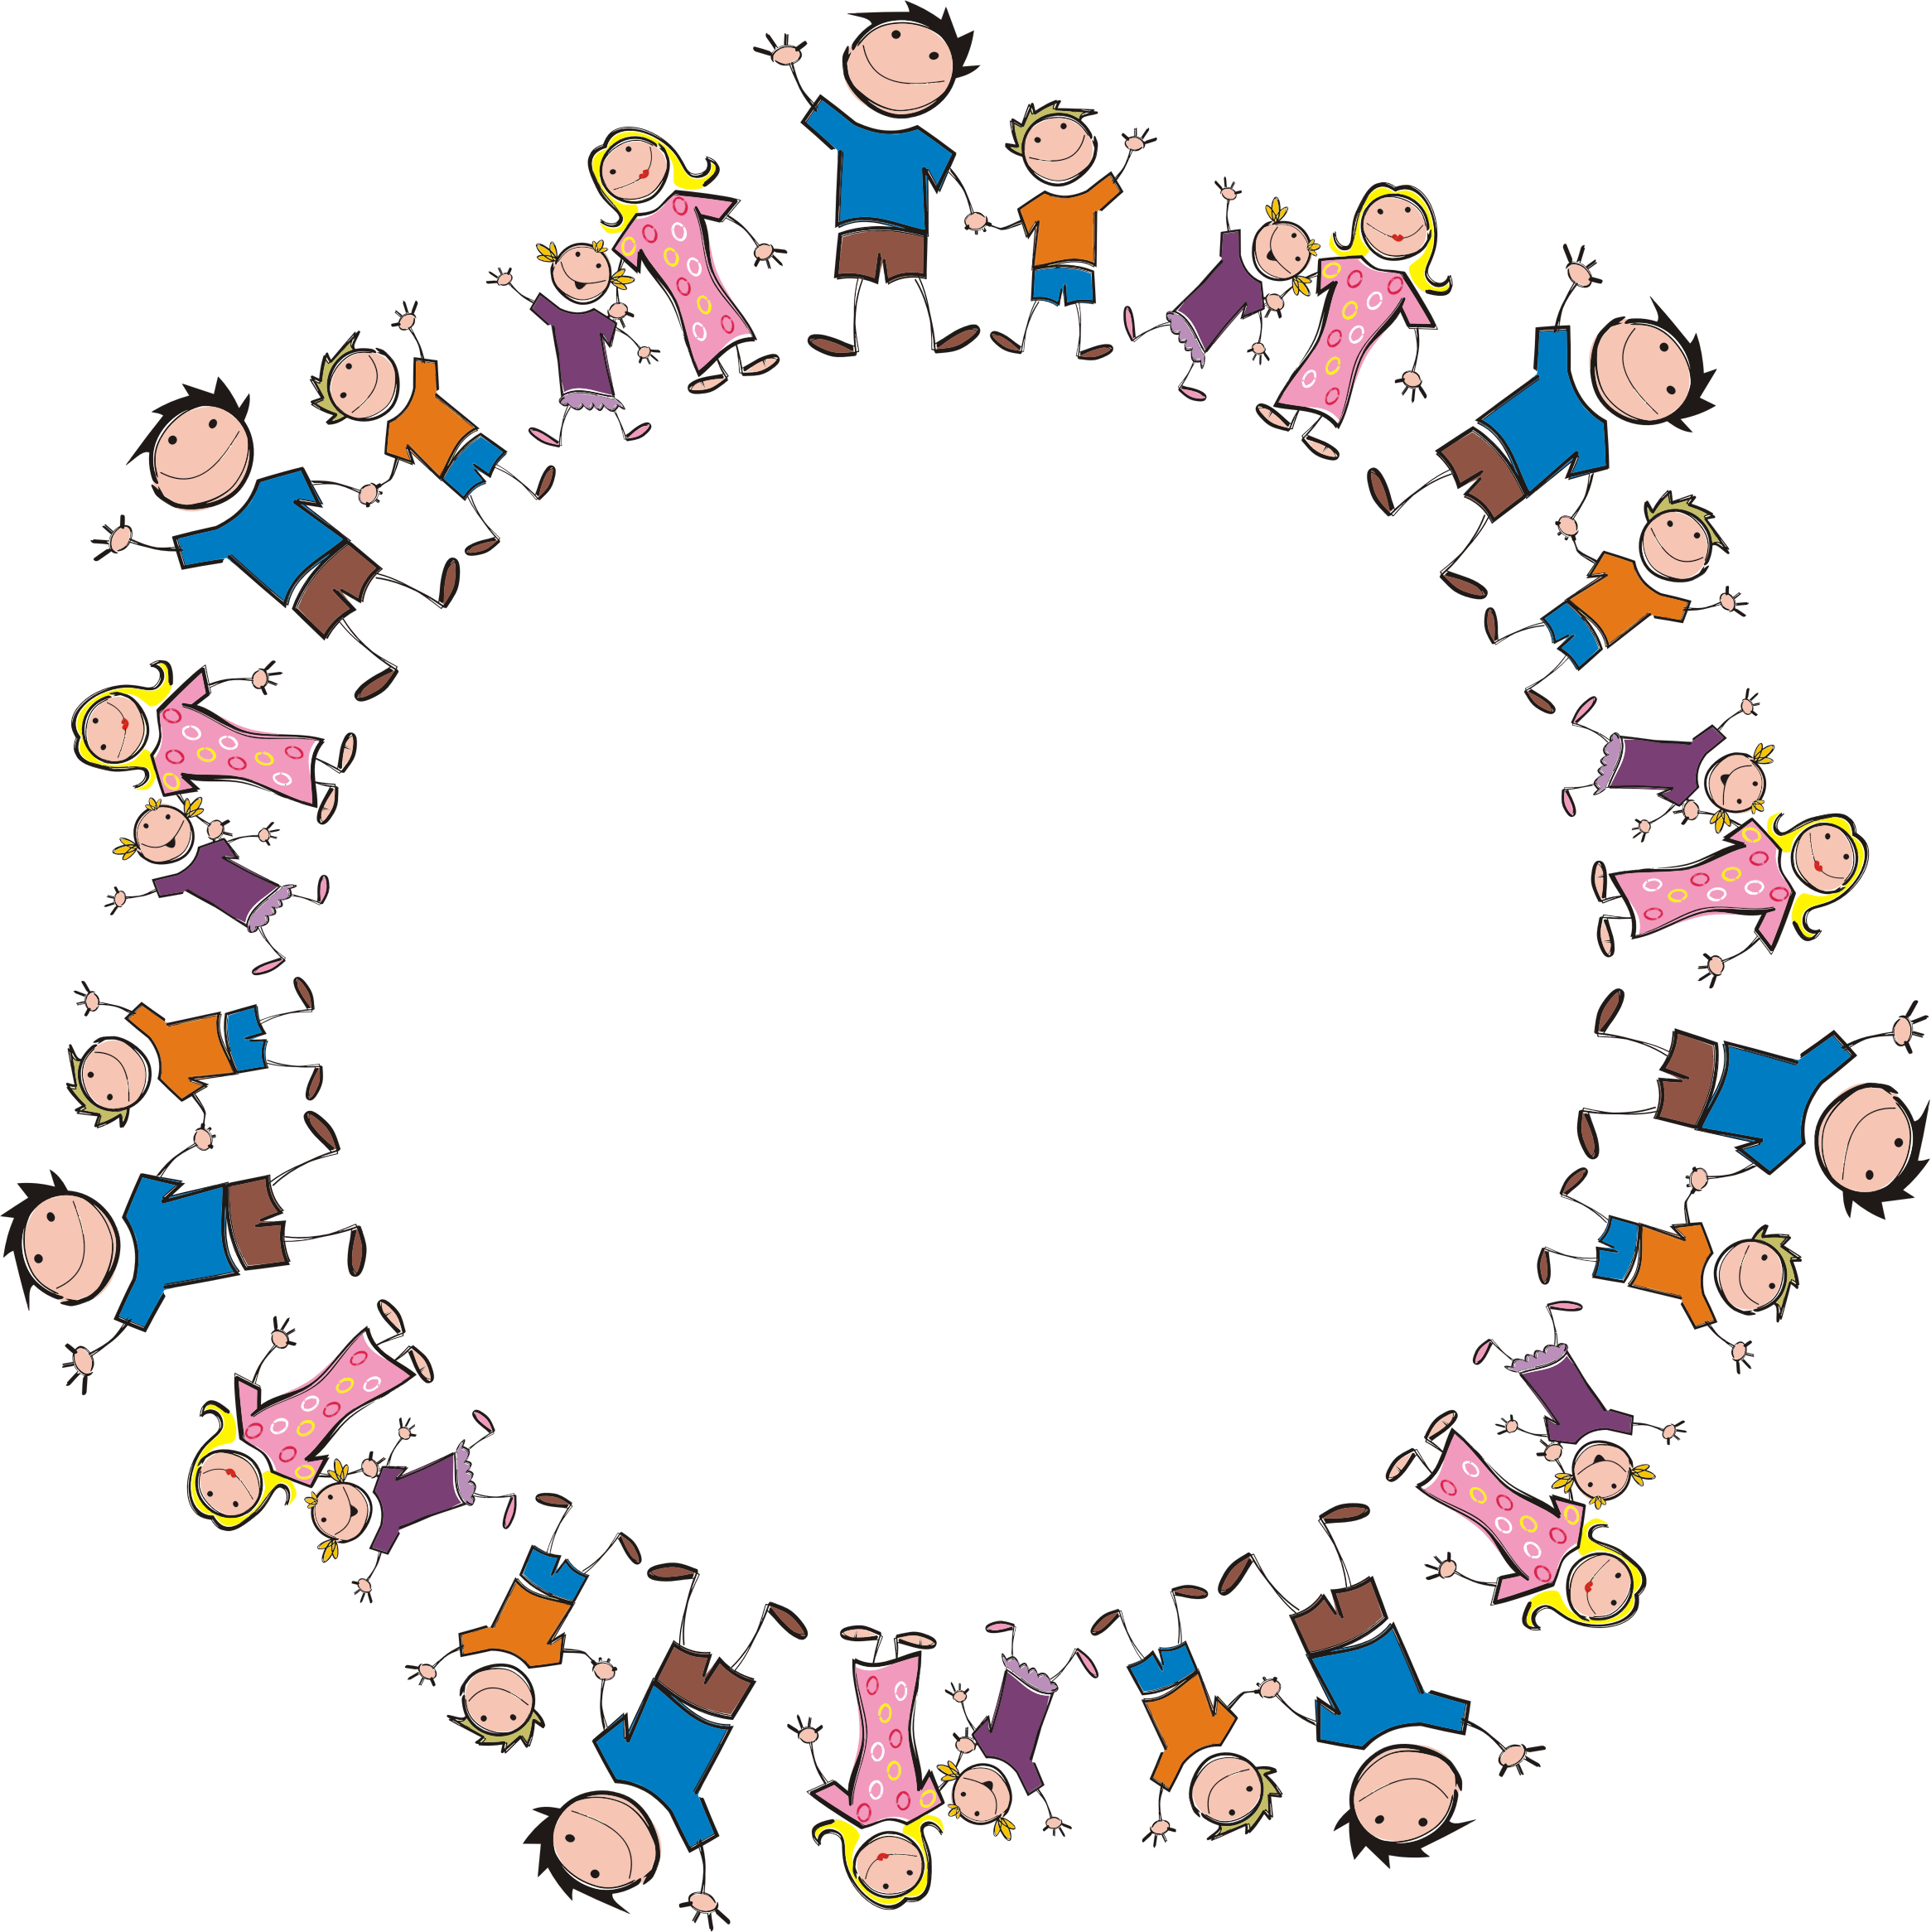 Clipart family stick figure. Circle big image png